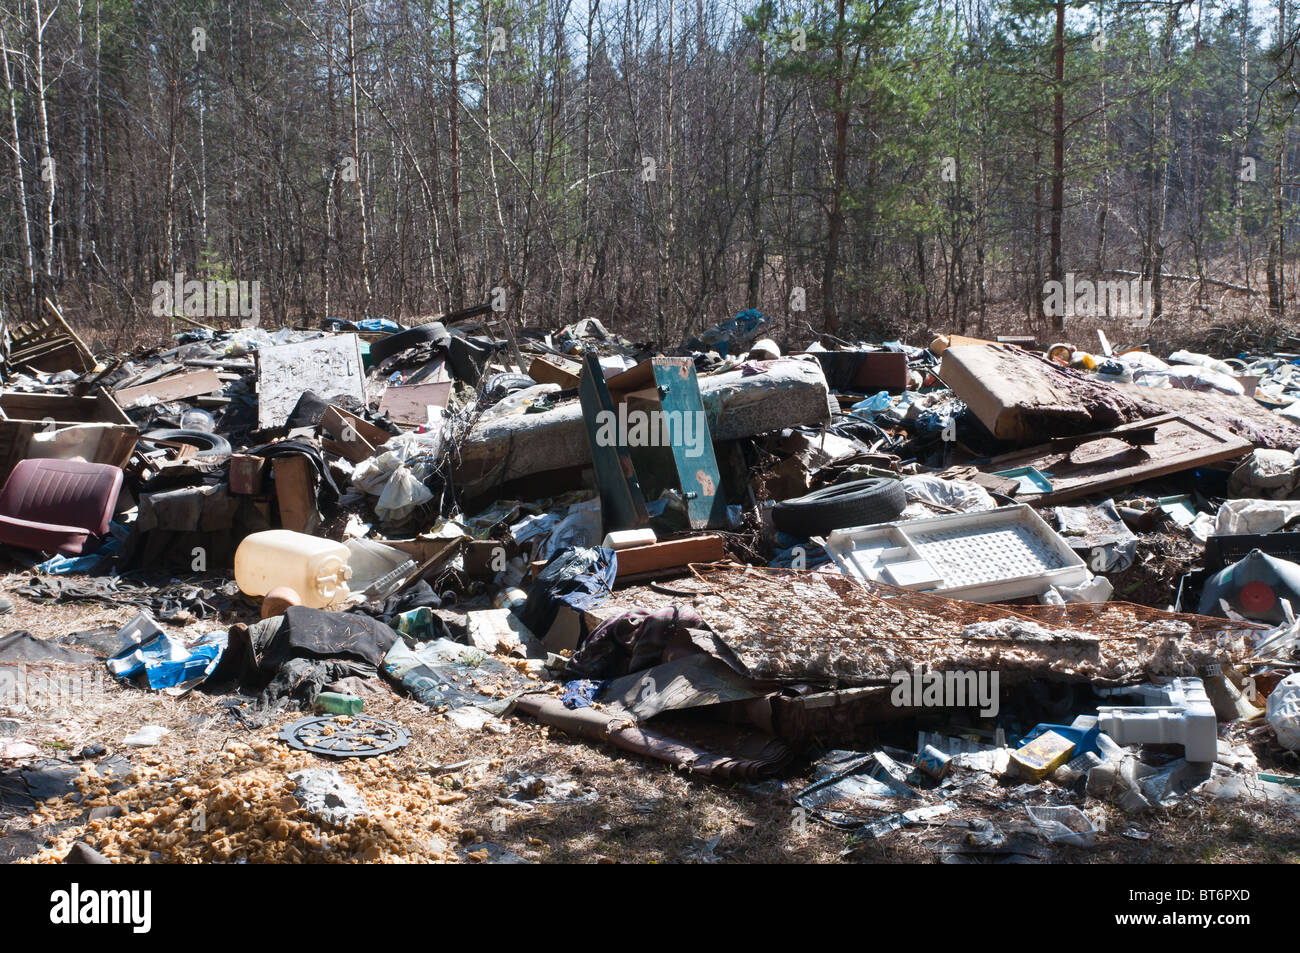 Garbage in nature - Stock Image